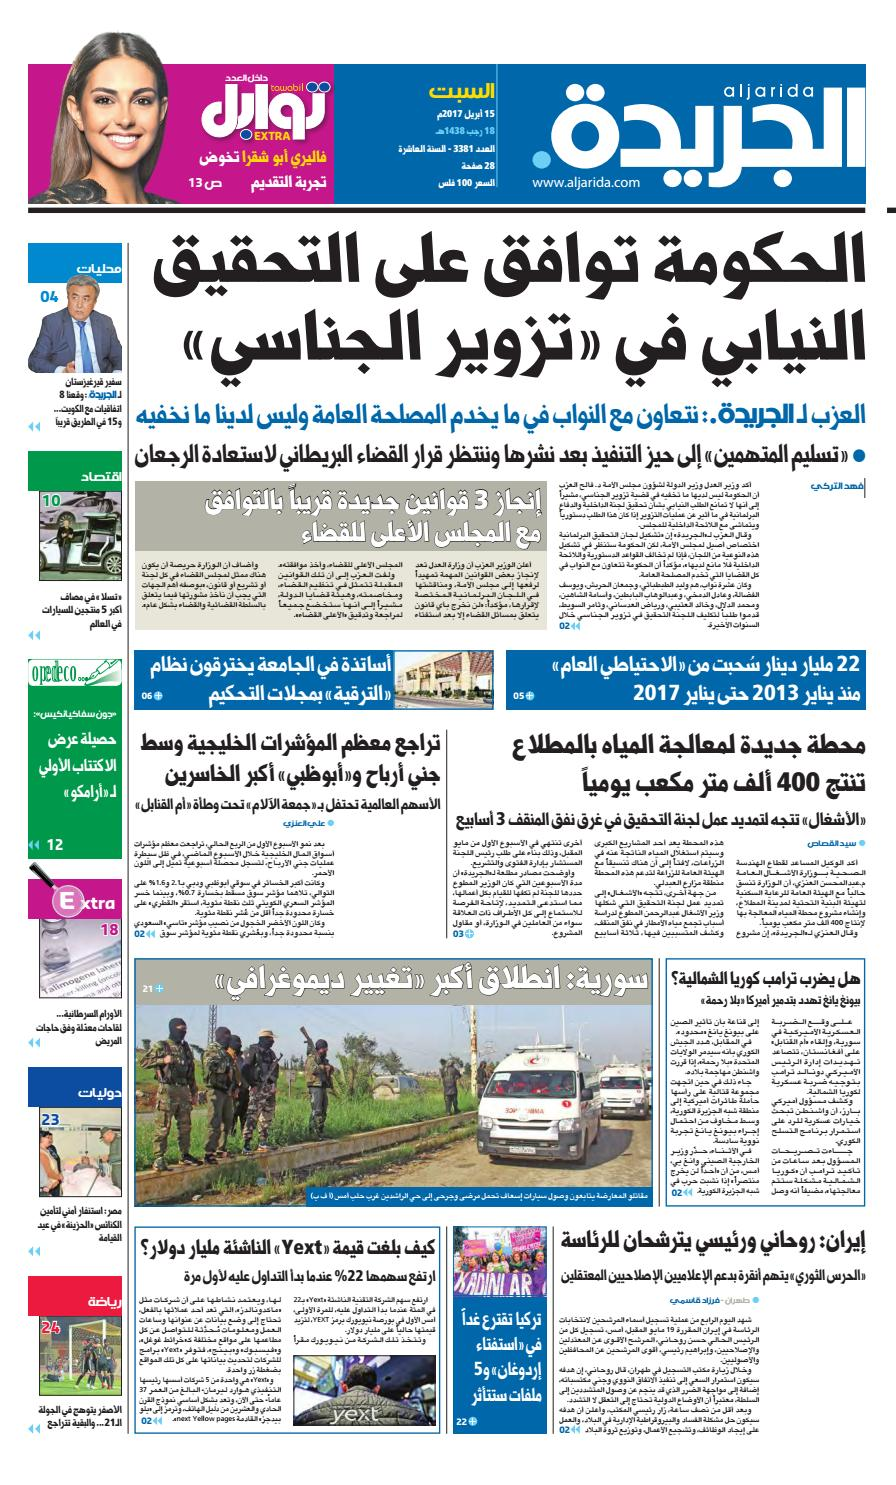 e96de828c عدد الجريدة 15 أبريل 2017 by Aljarida Newspaper - issuu